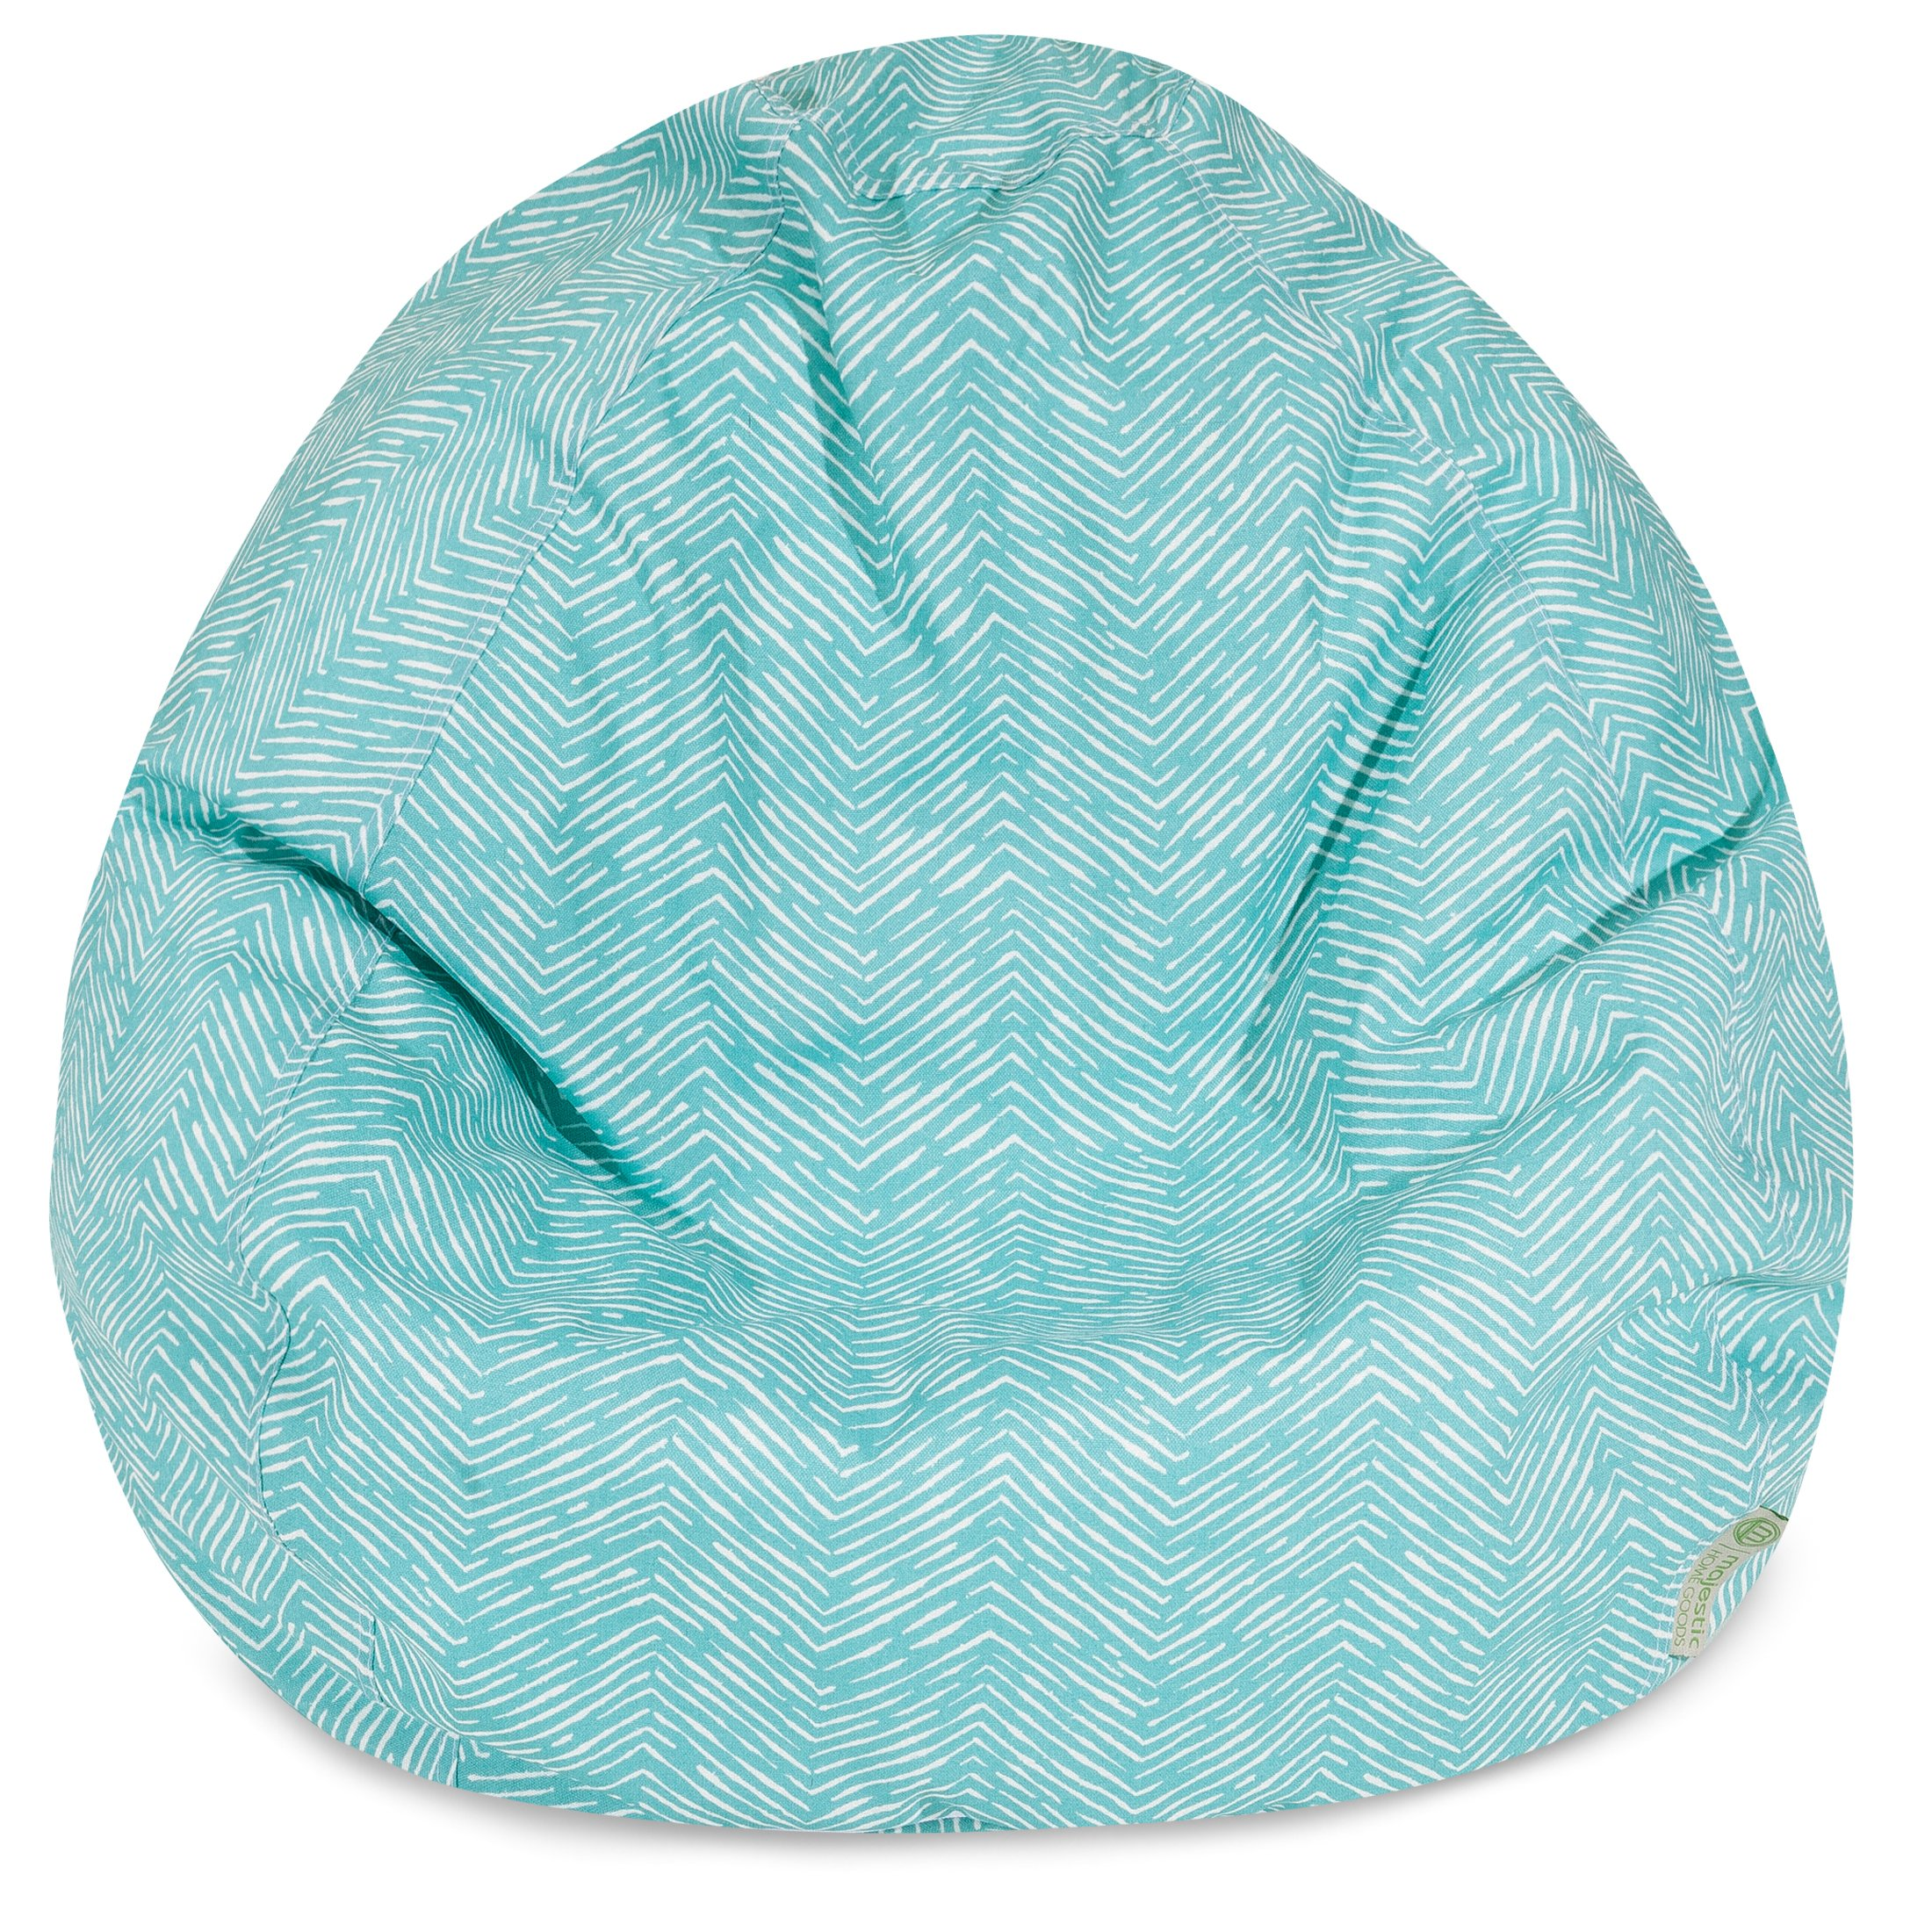 Majestic Home Goods Navajo Classic Bean Bag, Small, Teal